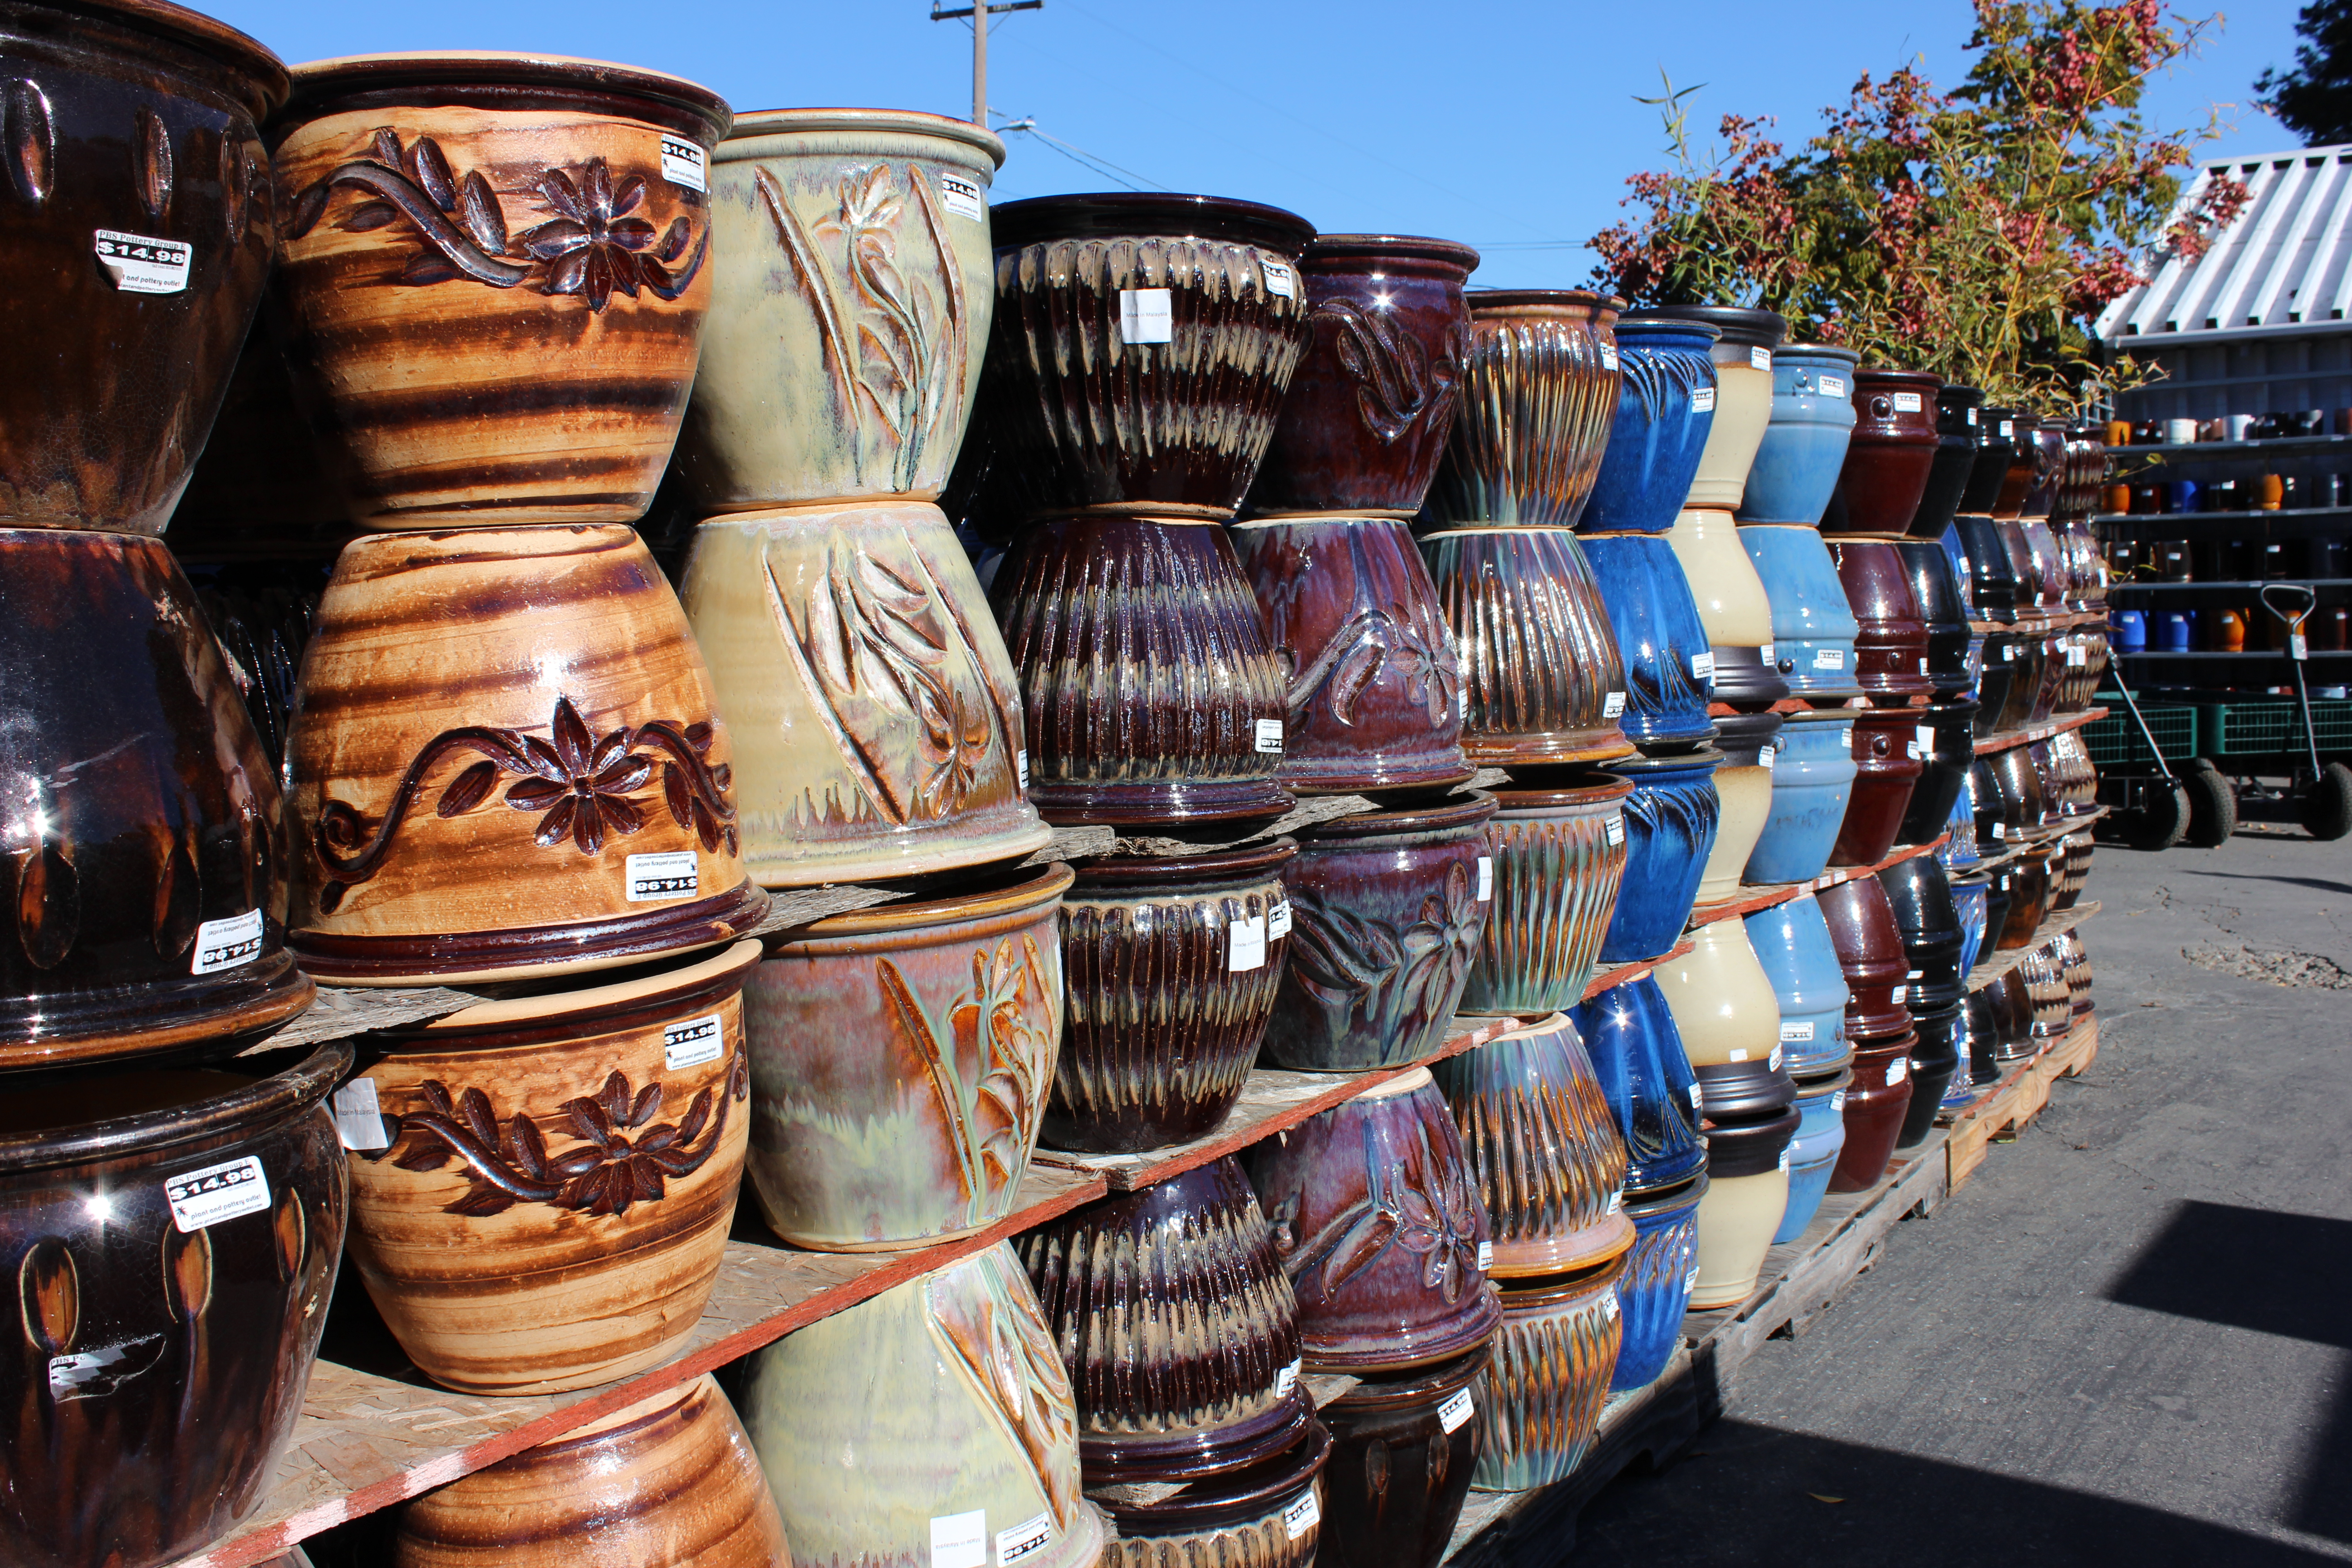 Plant And Pottery Outlet Sunol California Usa